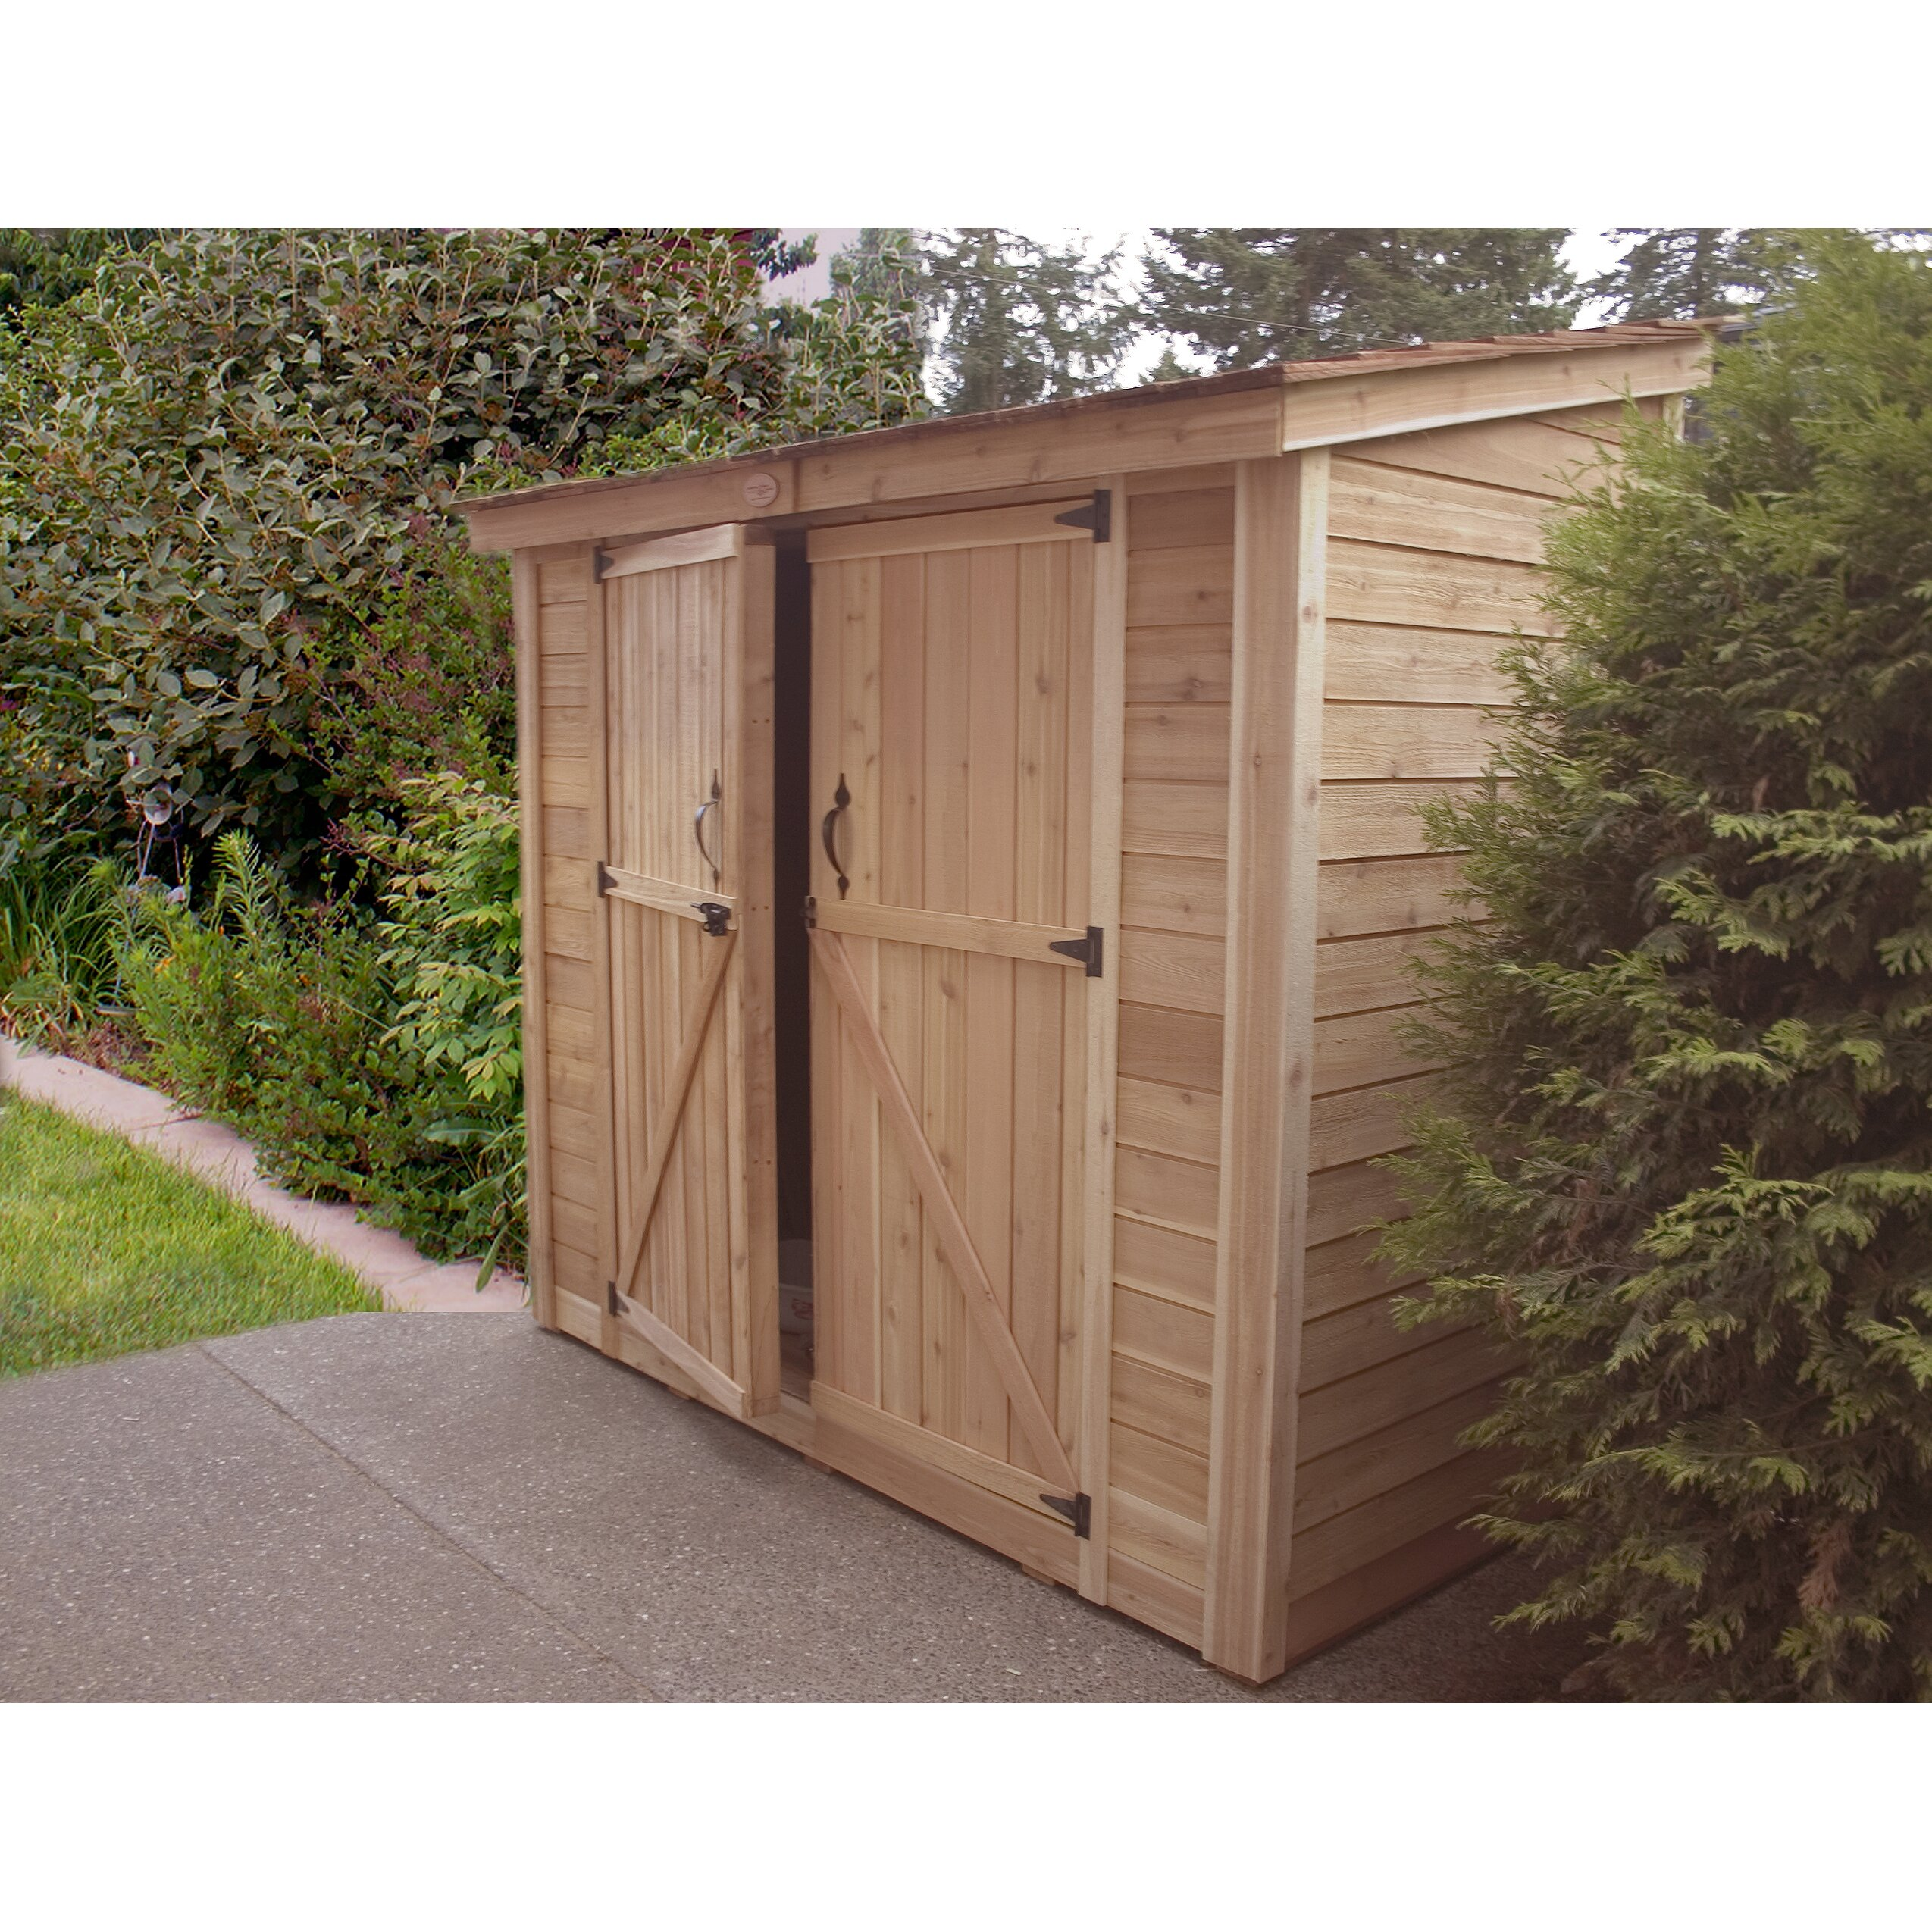 Outdoor living today spacesaver 8 5 ft w x 4 5 ft d wood for Garden shed 5 x 4